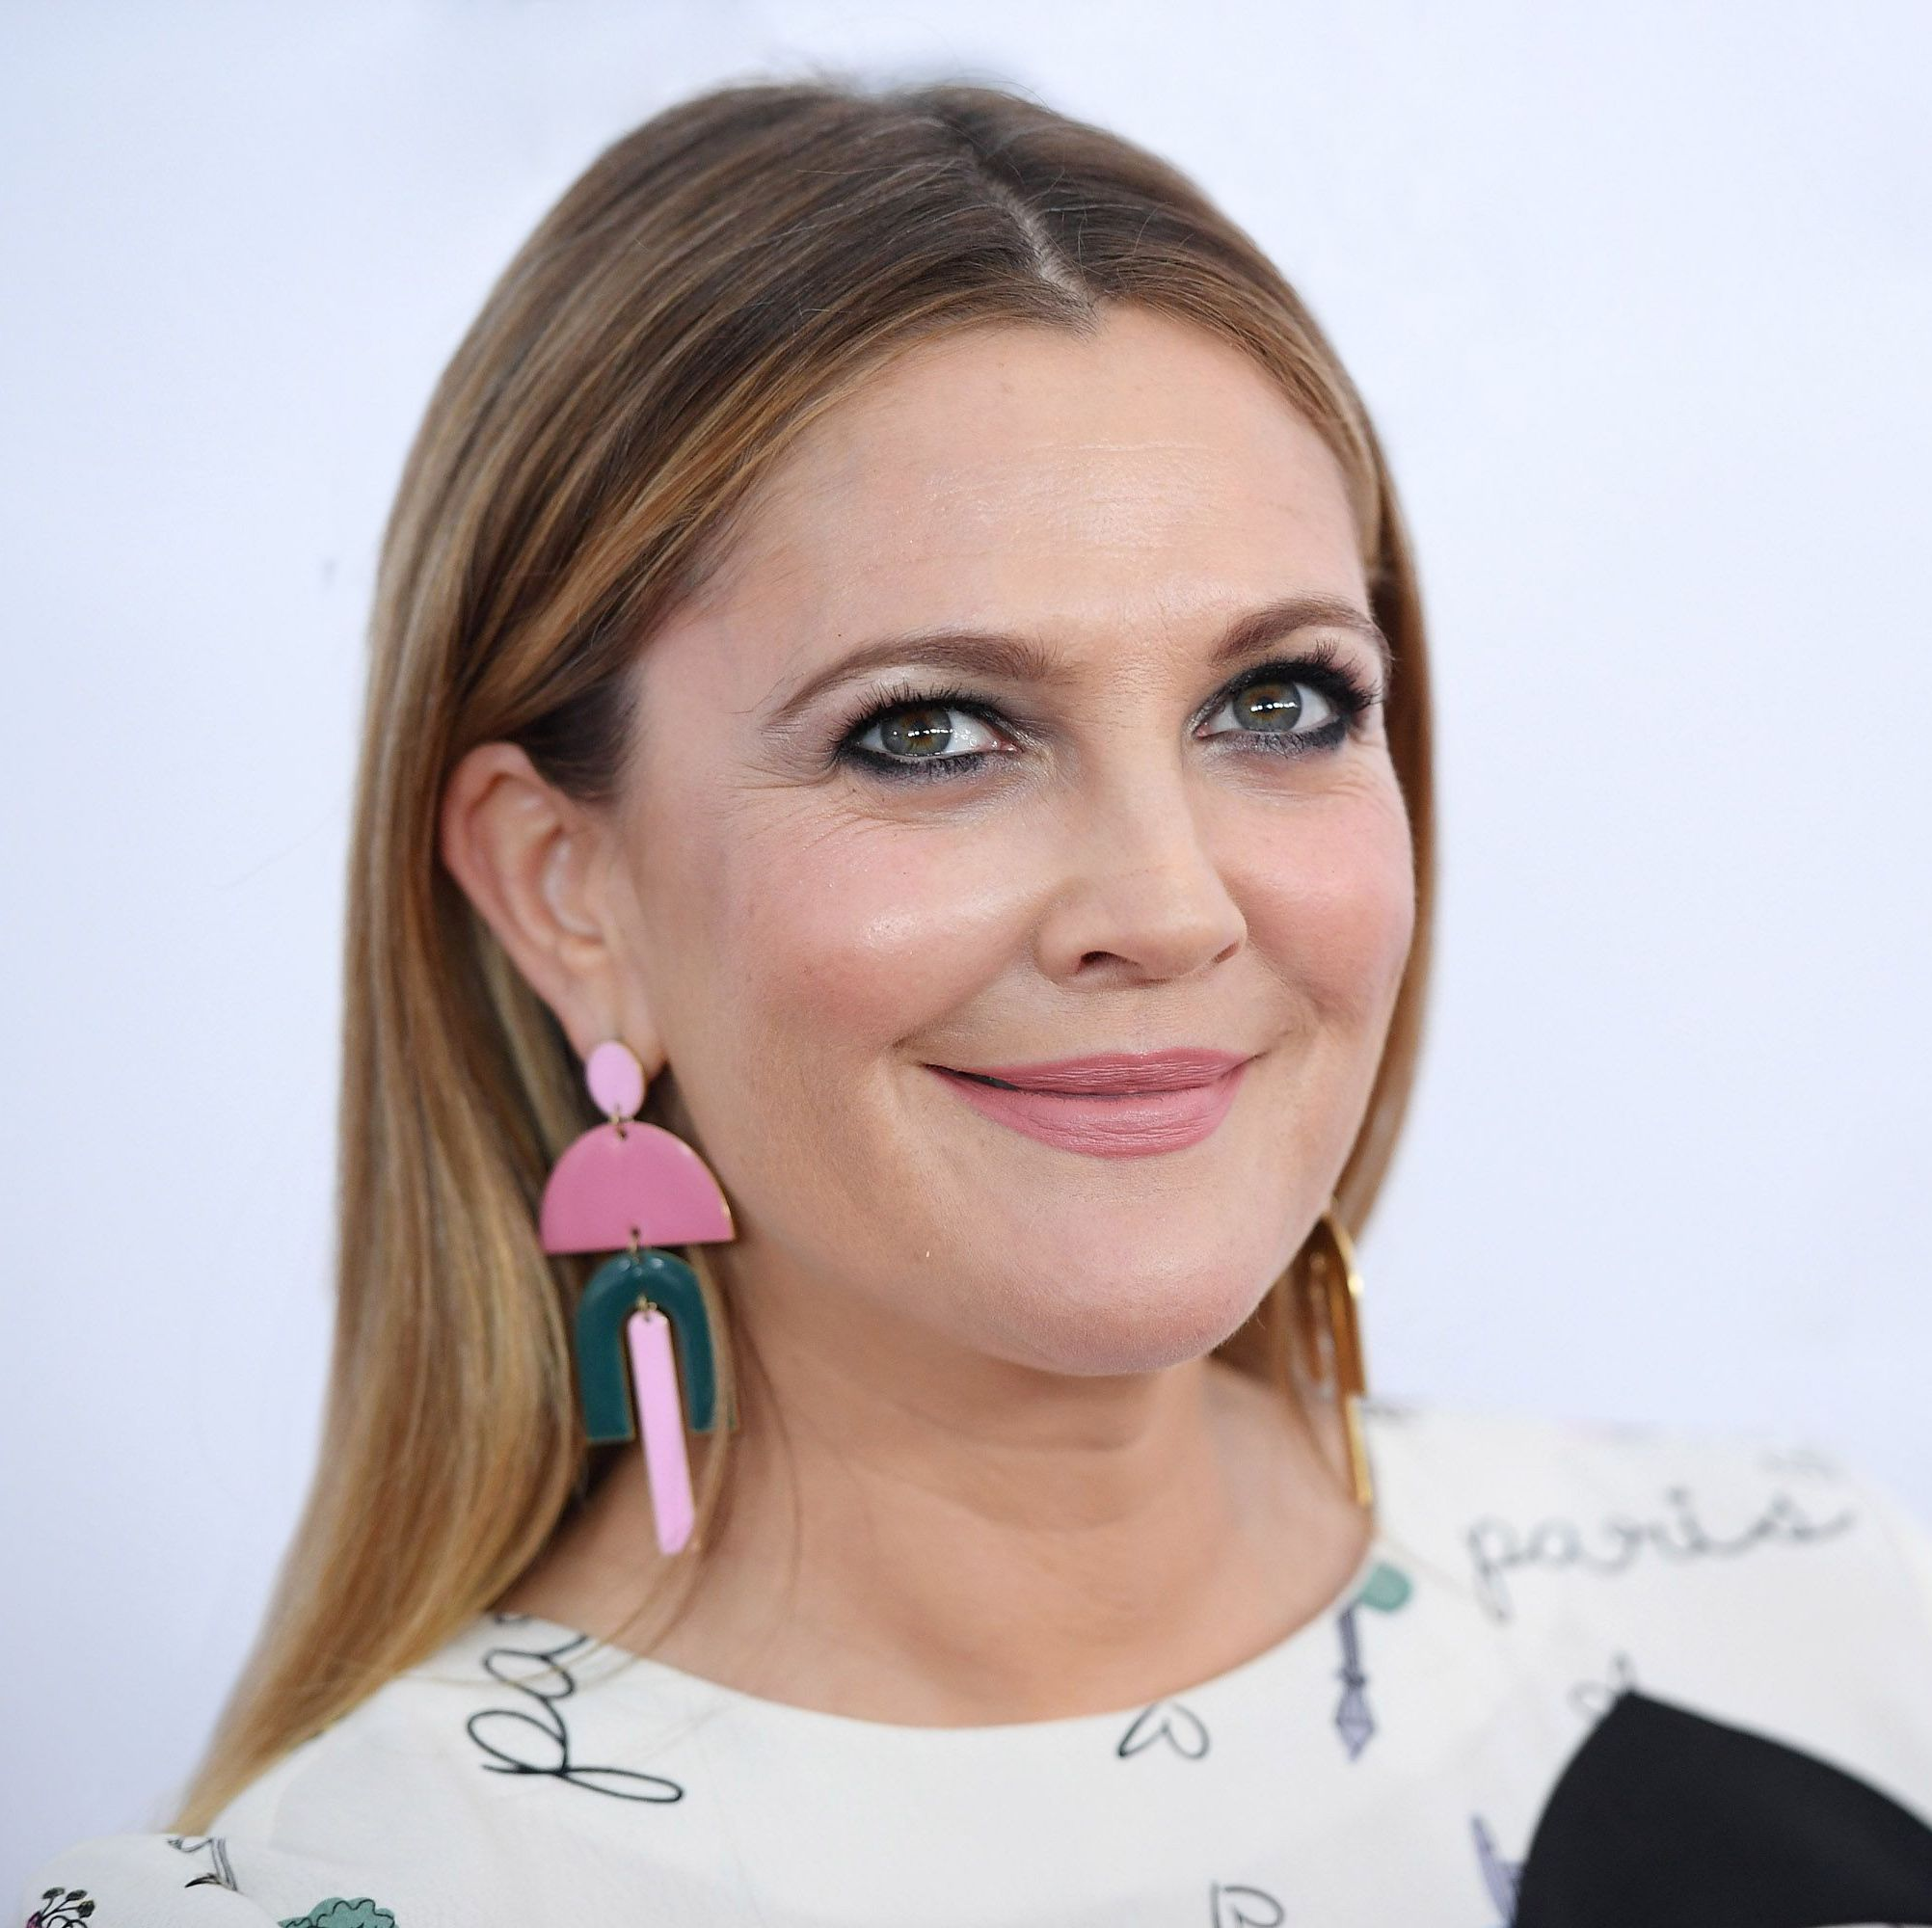 Drew Barrymore, 44, Reveals the Secrets to Her Youthful Skin